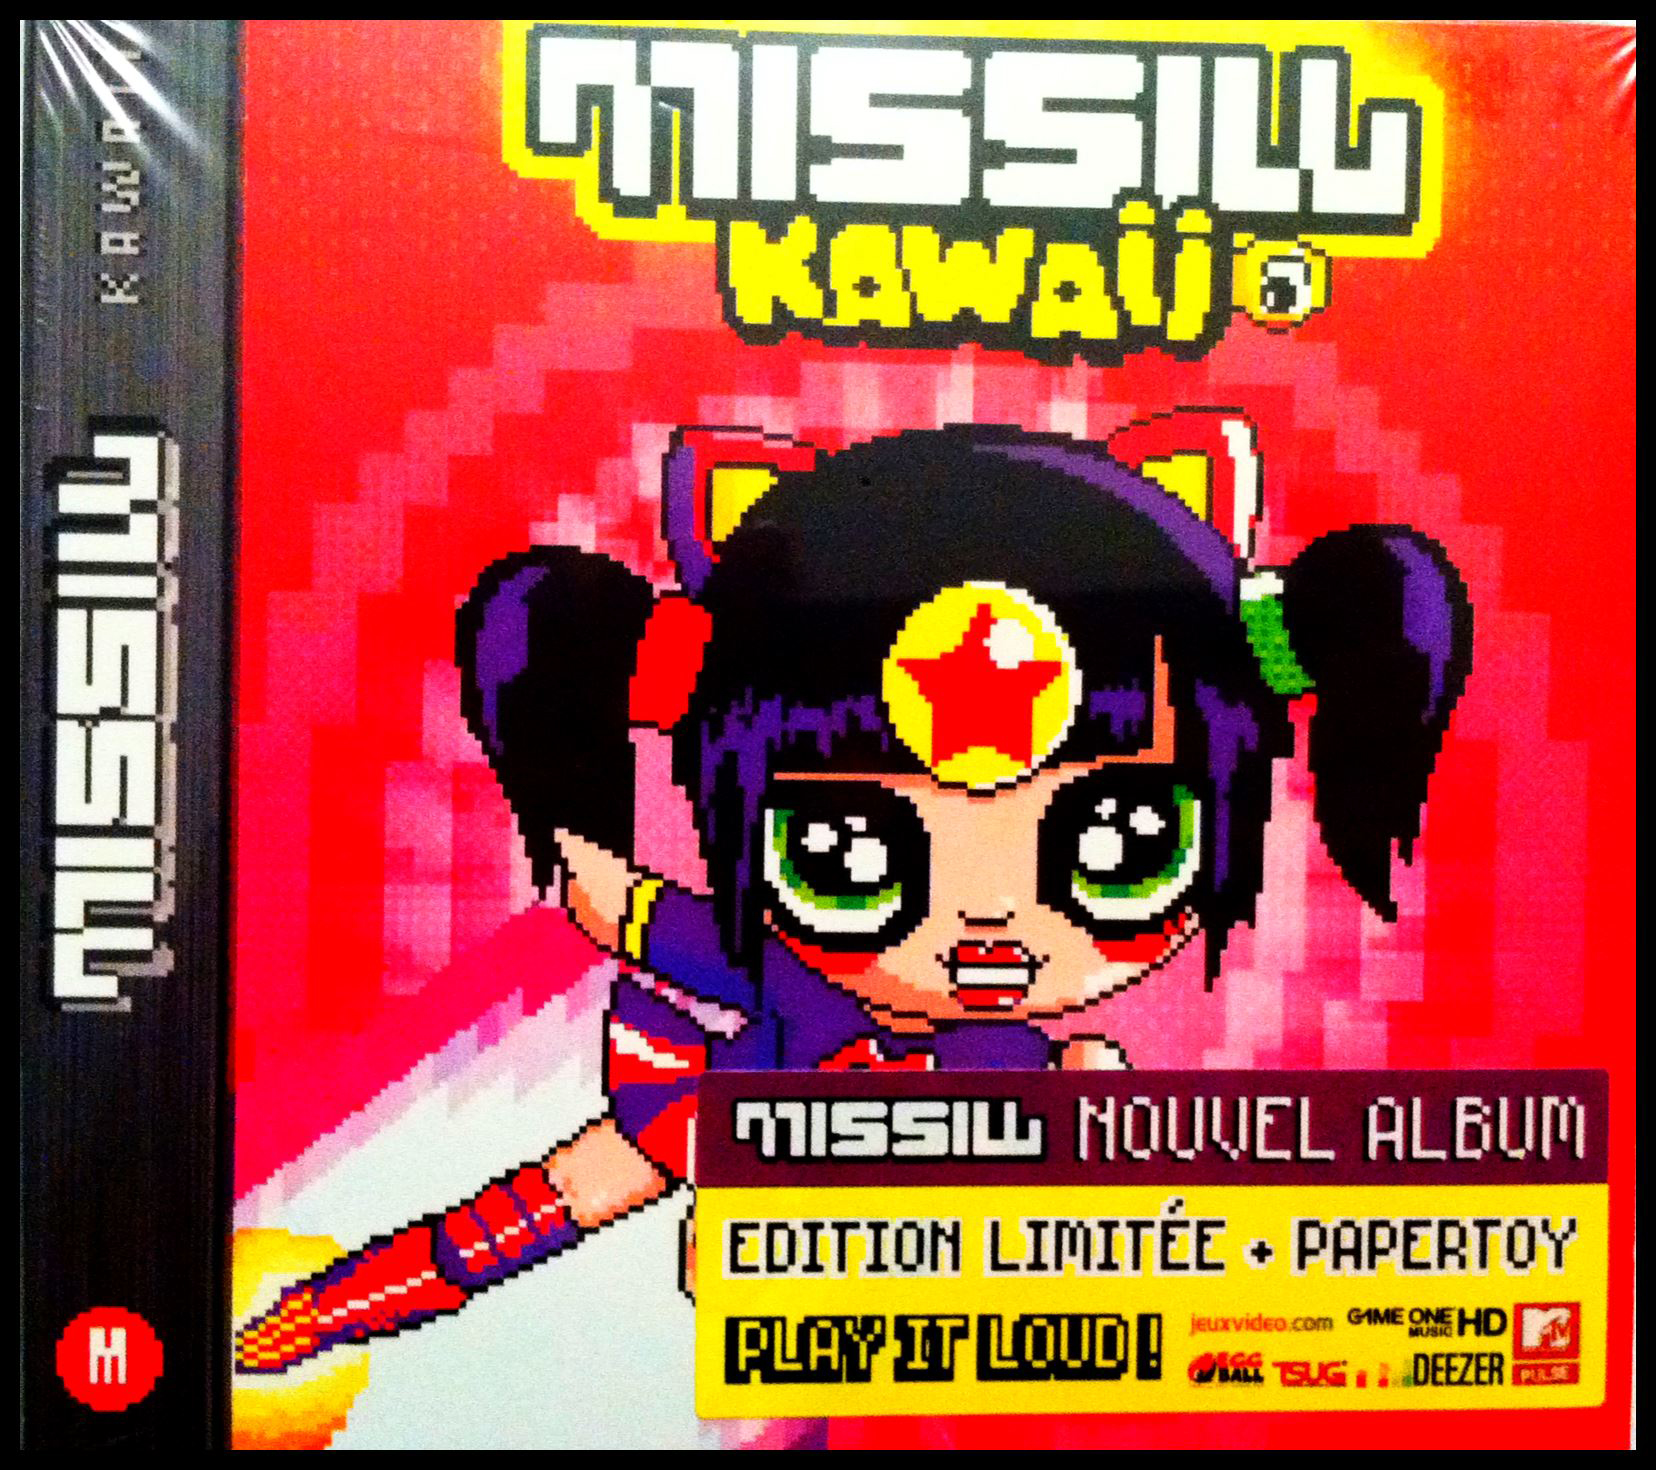 Paper Toy CD insert for DJ Missill's 'INVINCIBLE' release!